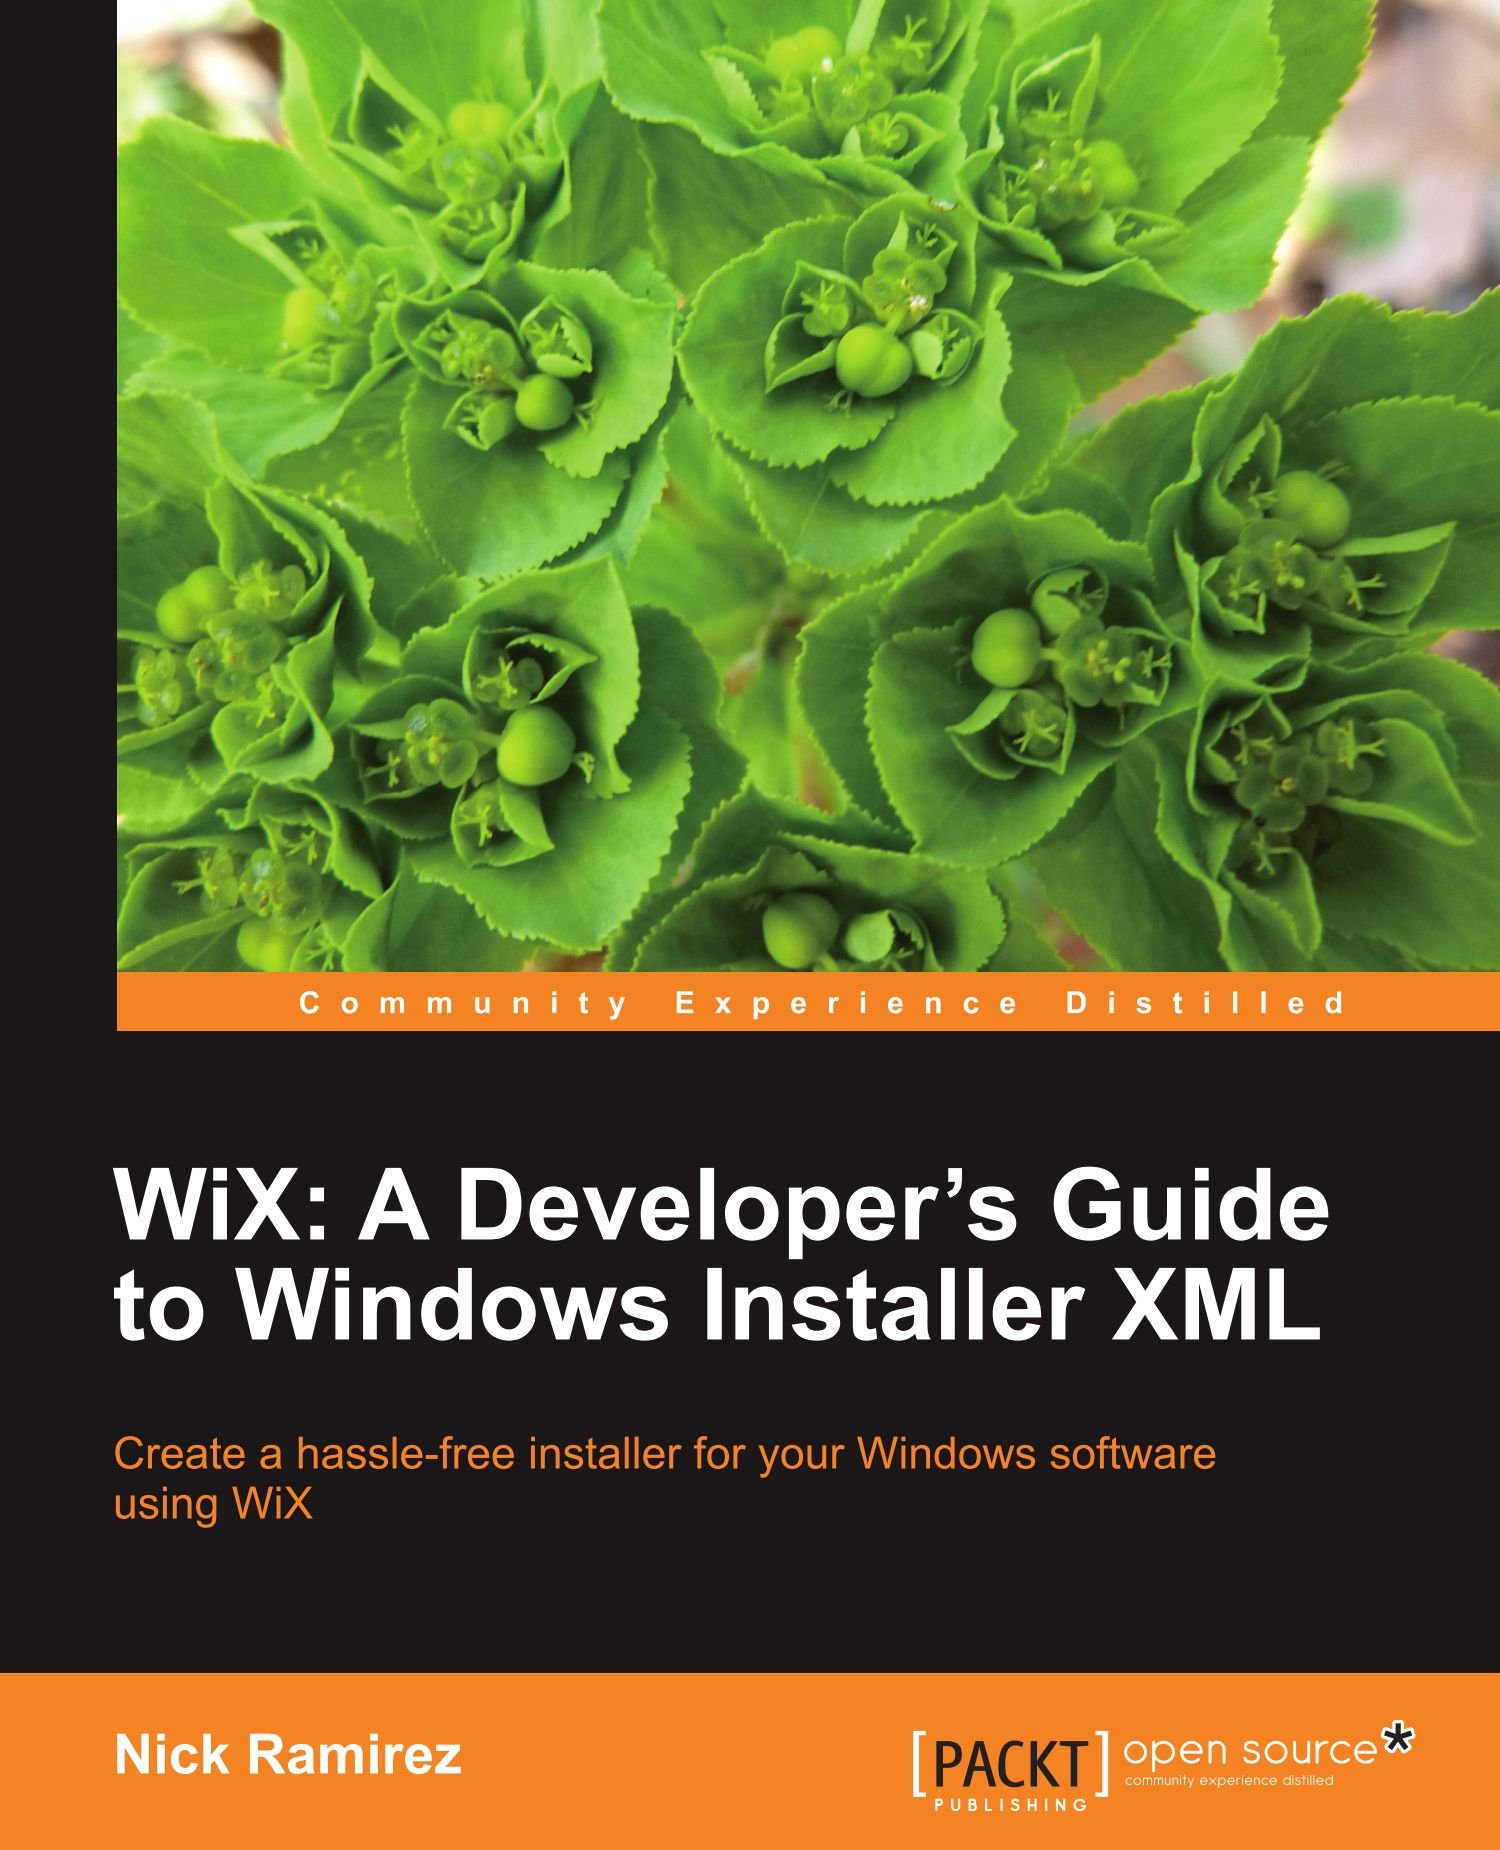 WiX: A Developers Guide to Windows Installer XML